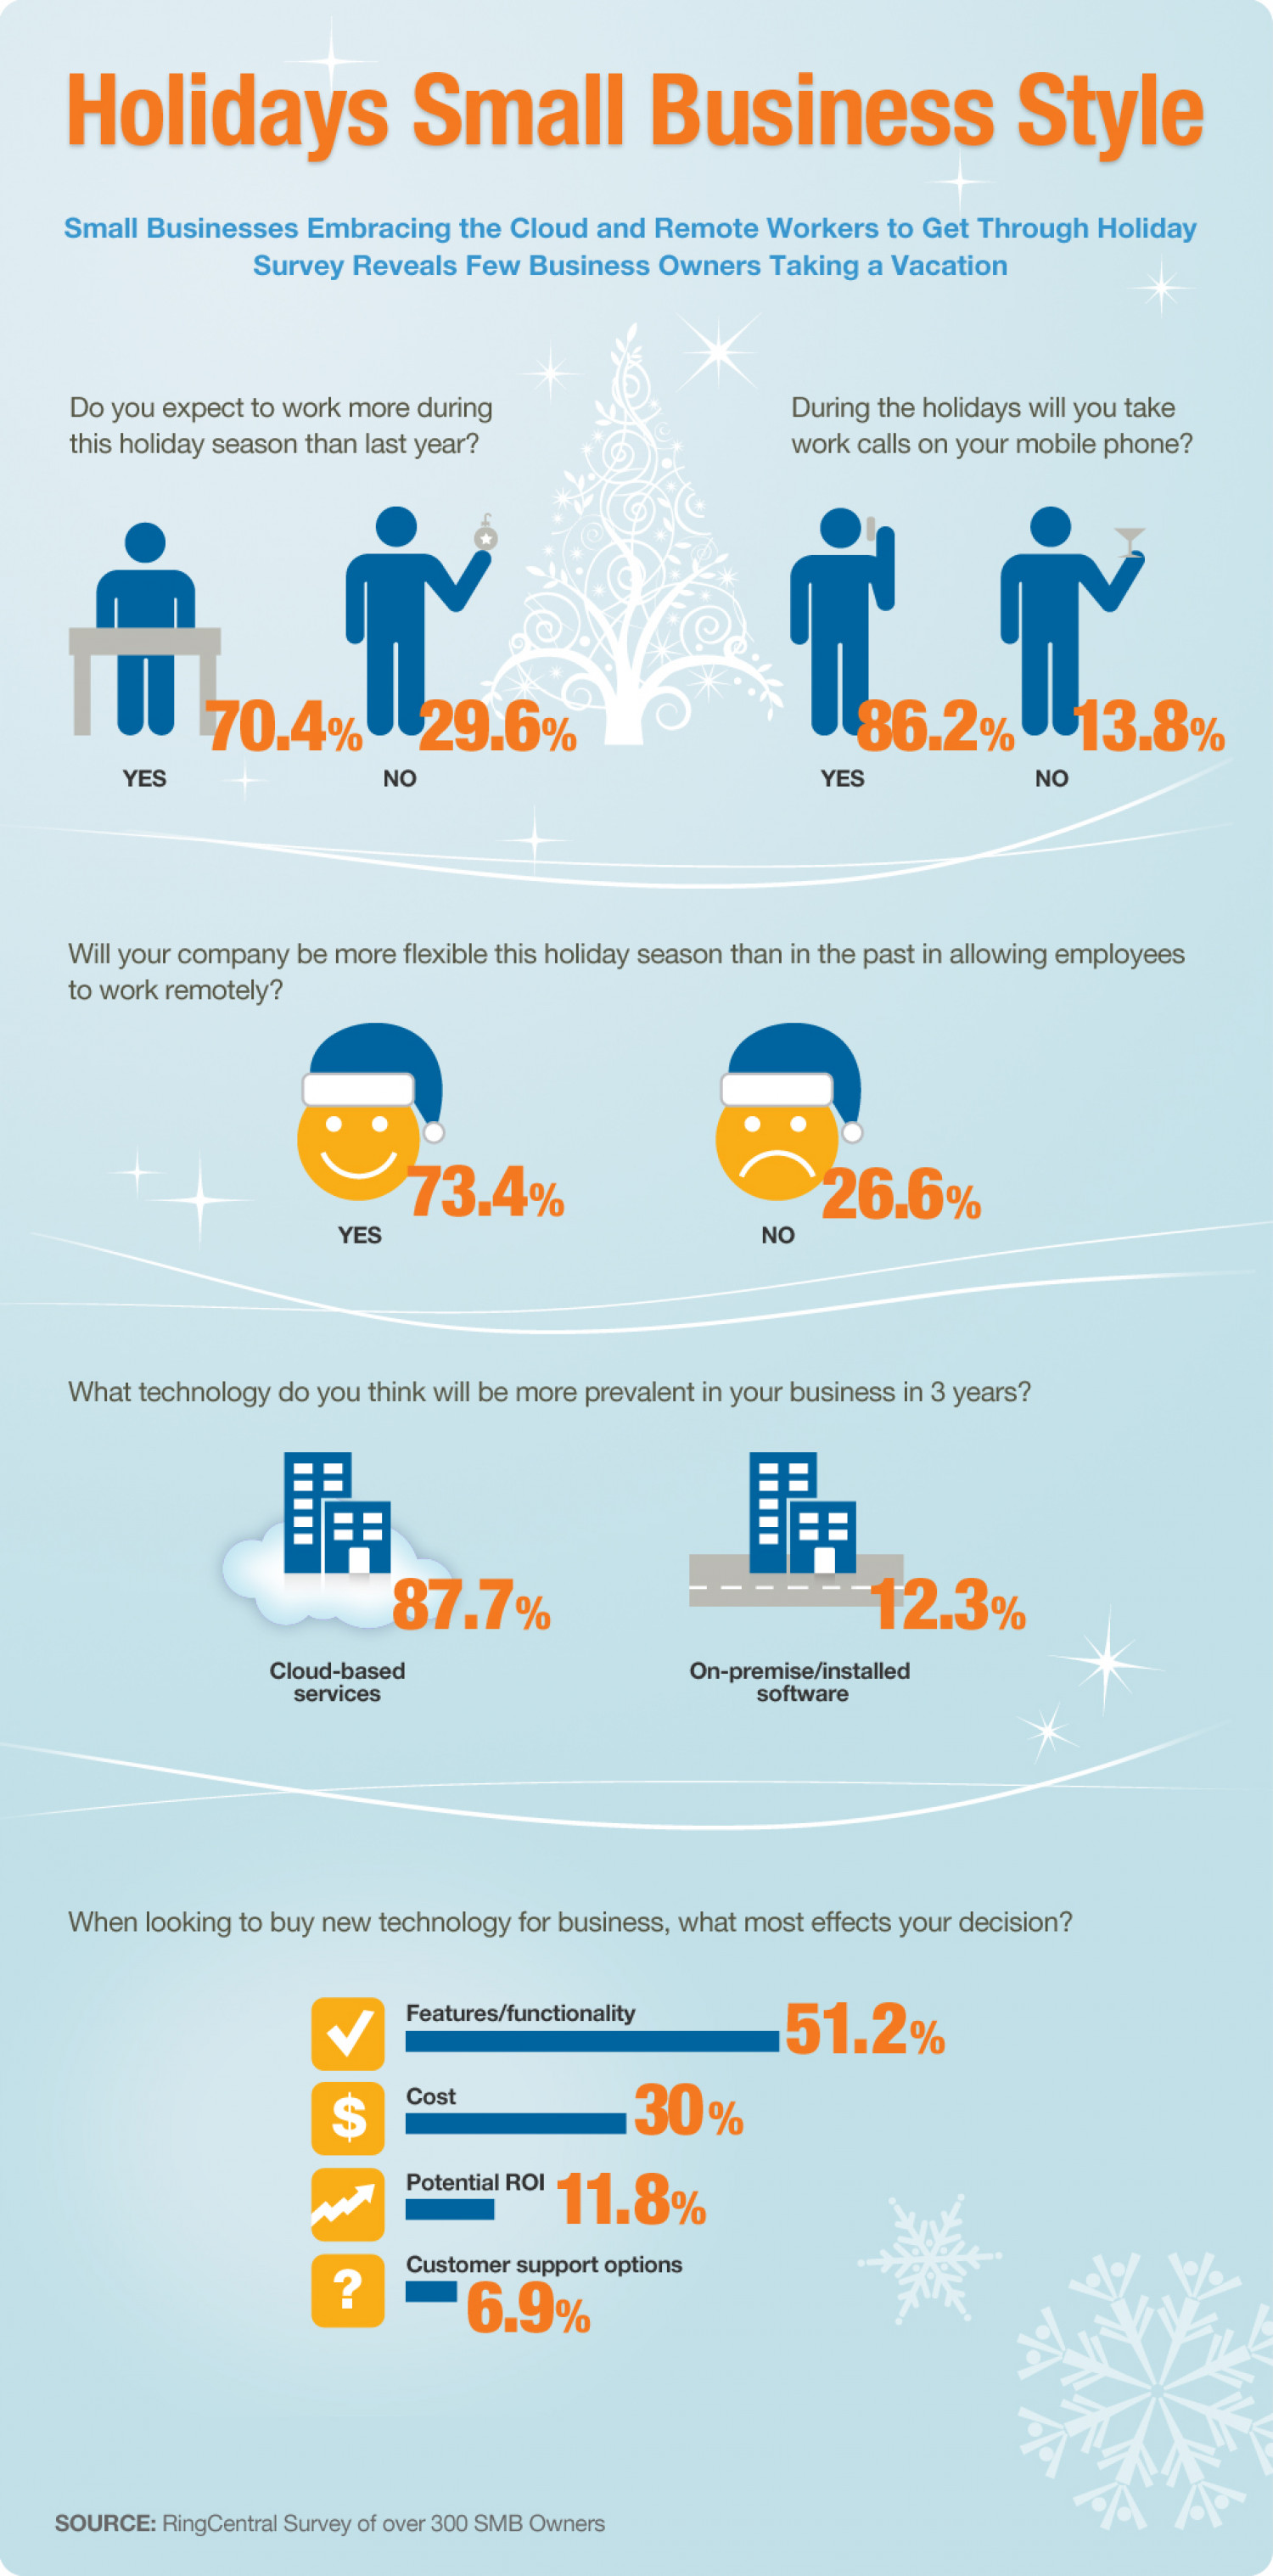 Holidays Small Business Style Infographic